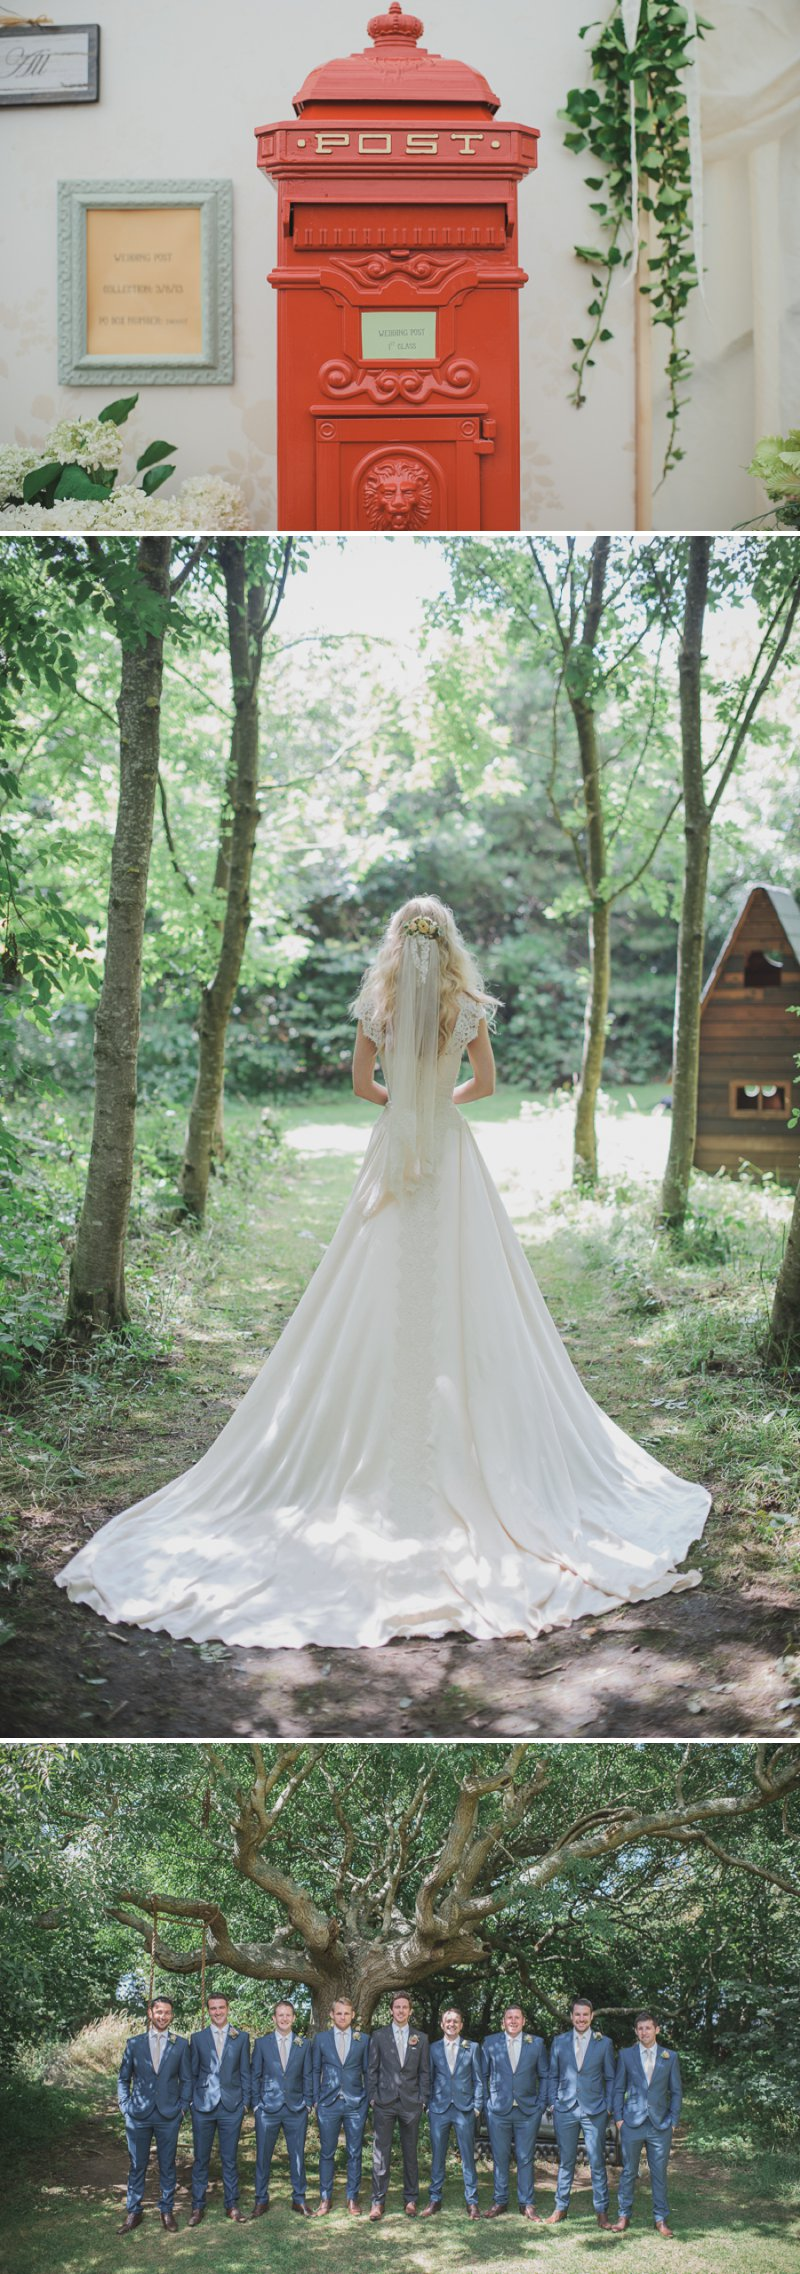 An Ethereal Summer Woodland Wedding At Hilton Court Gardens In Pembrokeshire Wales With A Silk Stephanie Allin Dress And An Amnesia Rose Bouquet Photographed By O&C Photography._0010